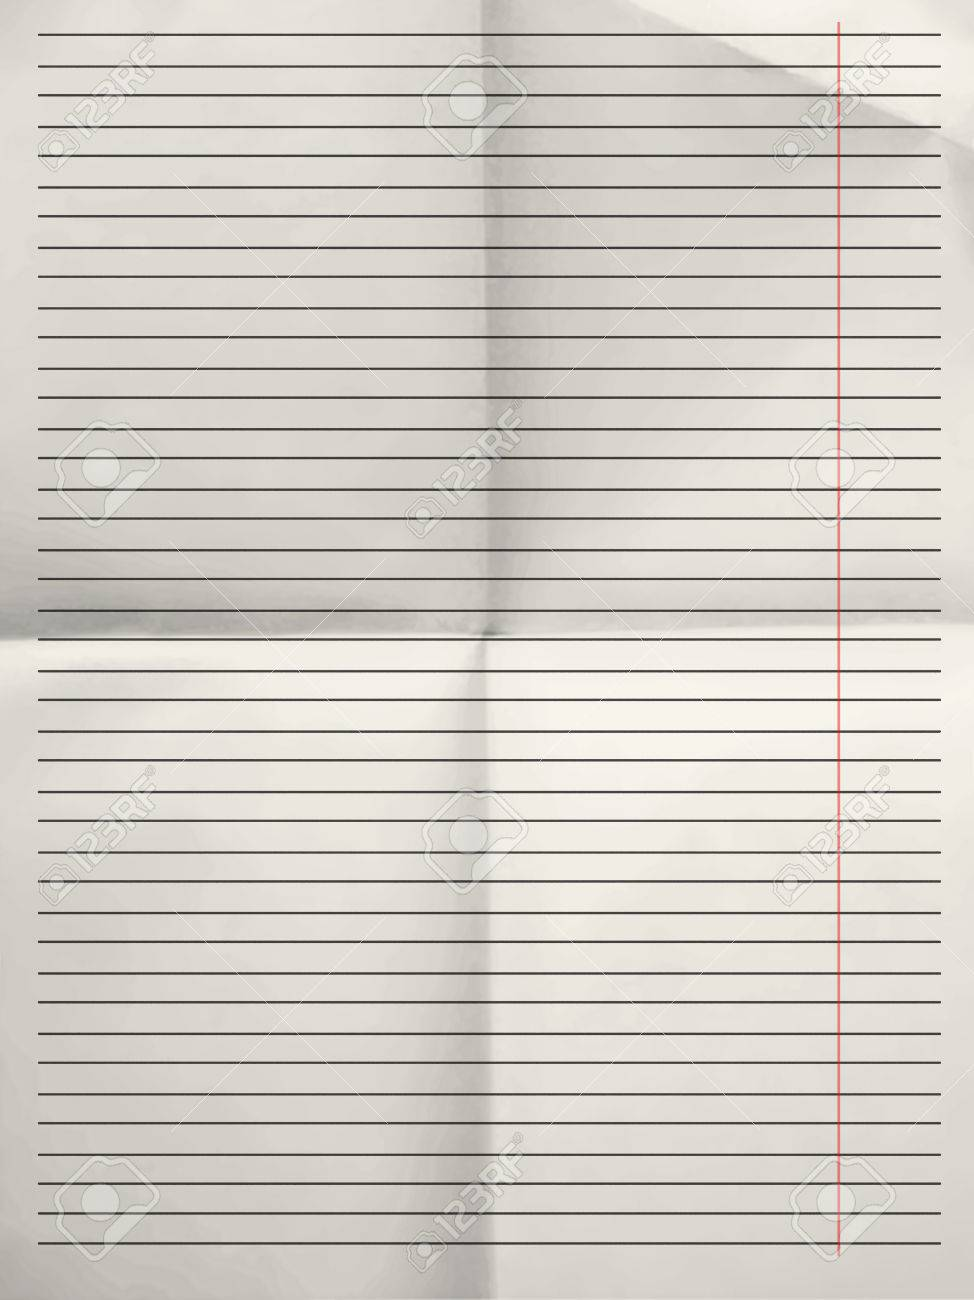 Old Sheet Of Grey Lined Paper Background With Red Margin Folded – Lined Paper to Write on